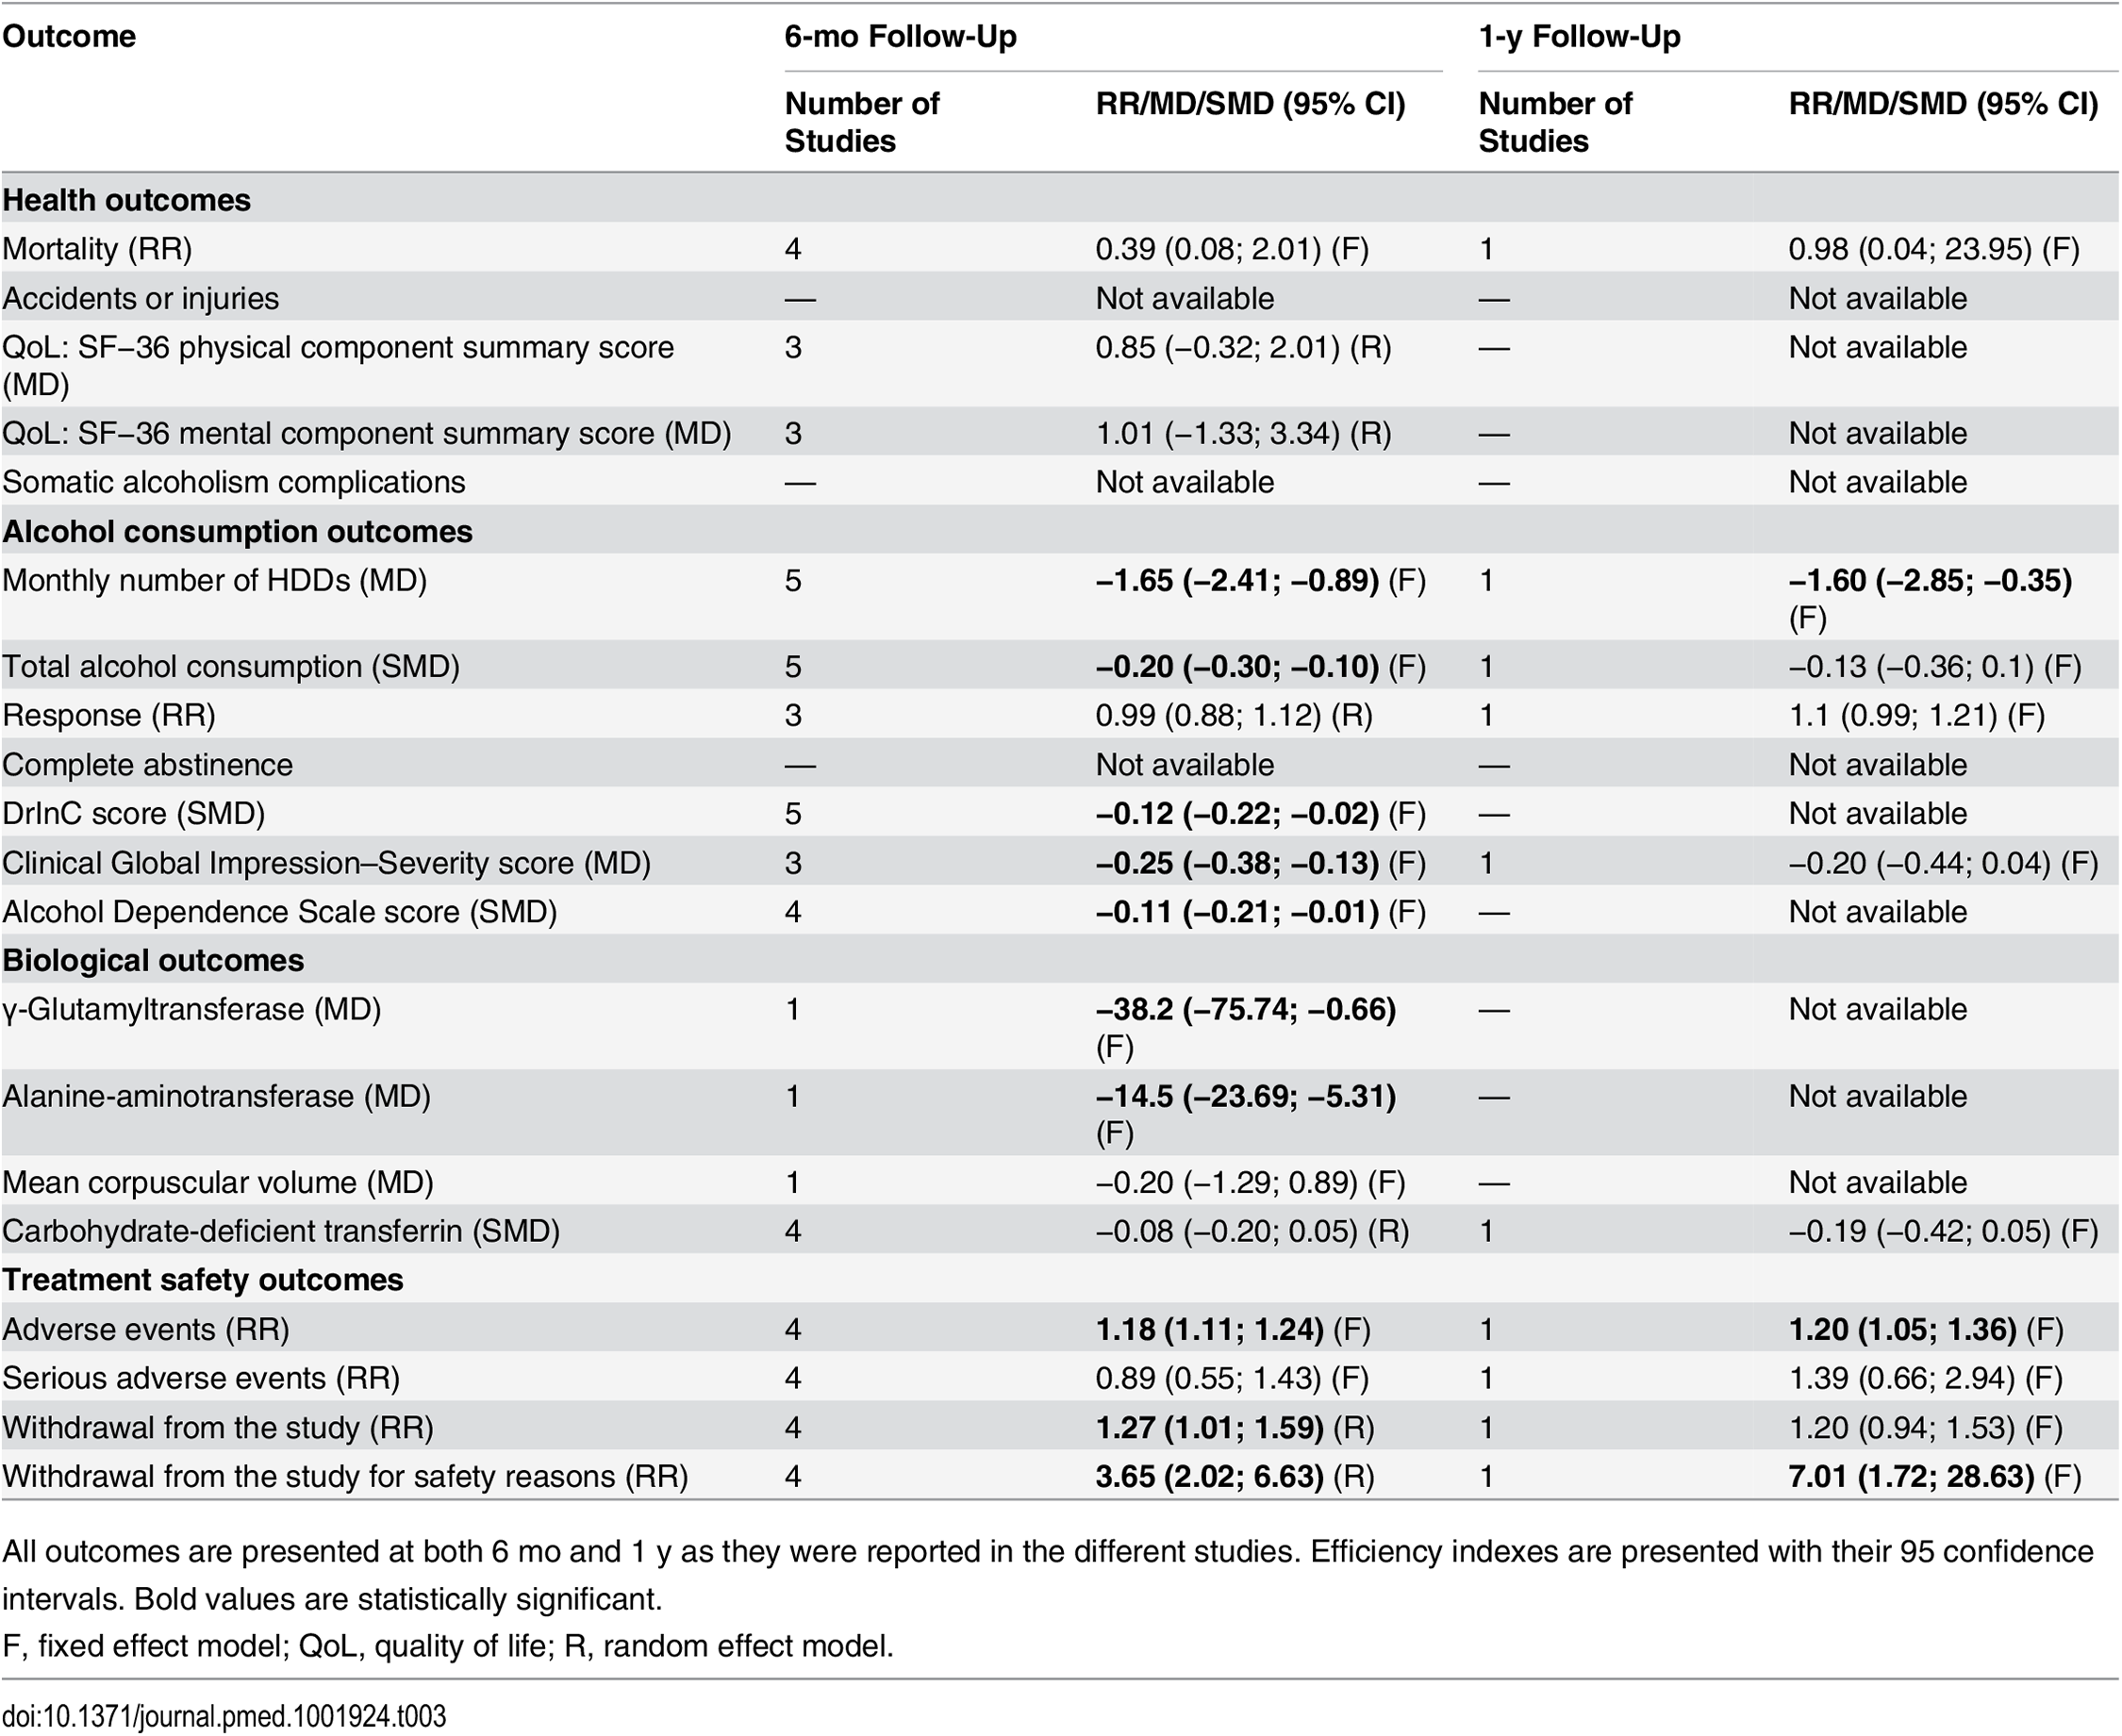 Summary of findings from trials assessing efficacy of nalmefene in the treatment of adult alcohol dependence.